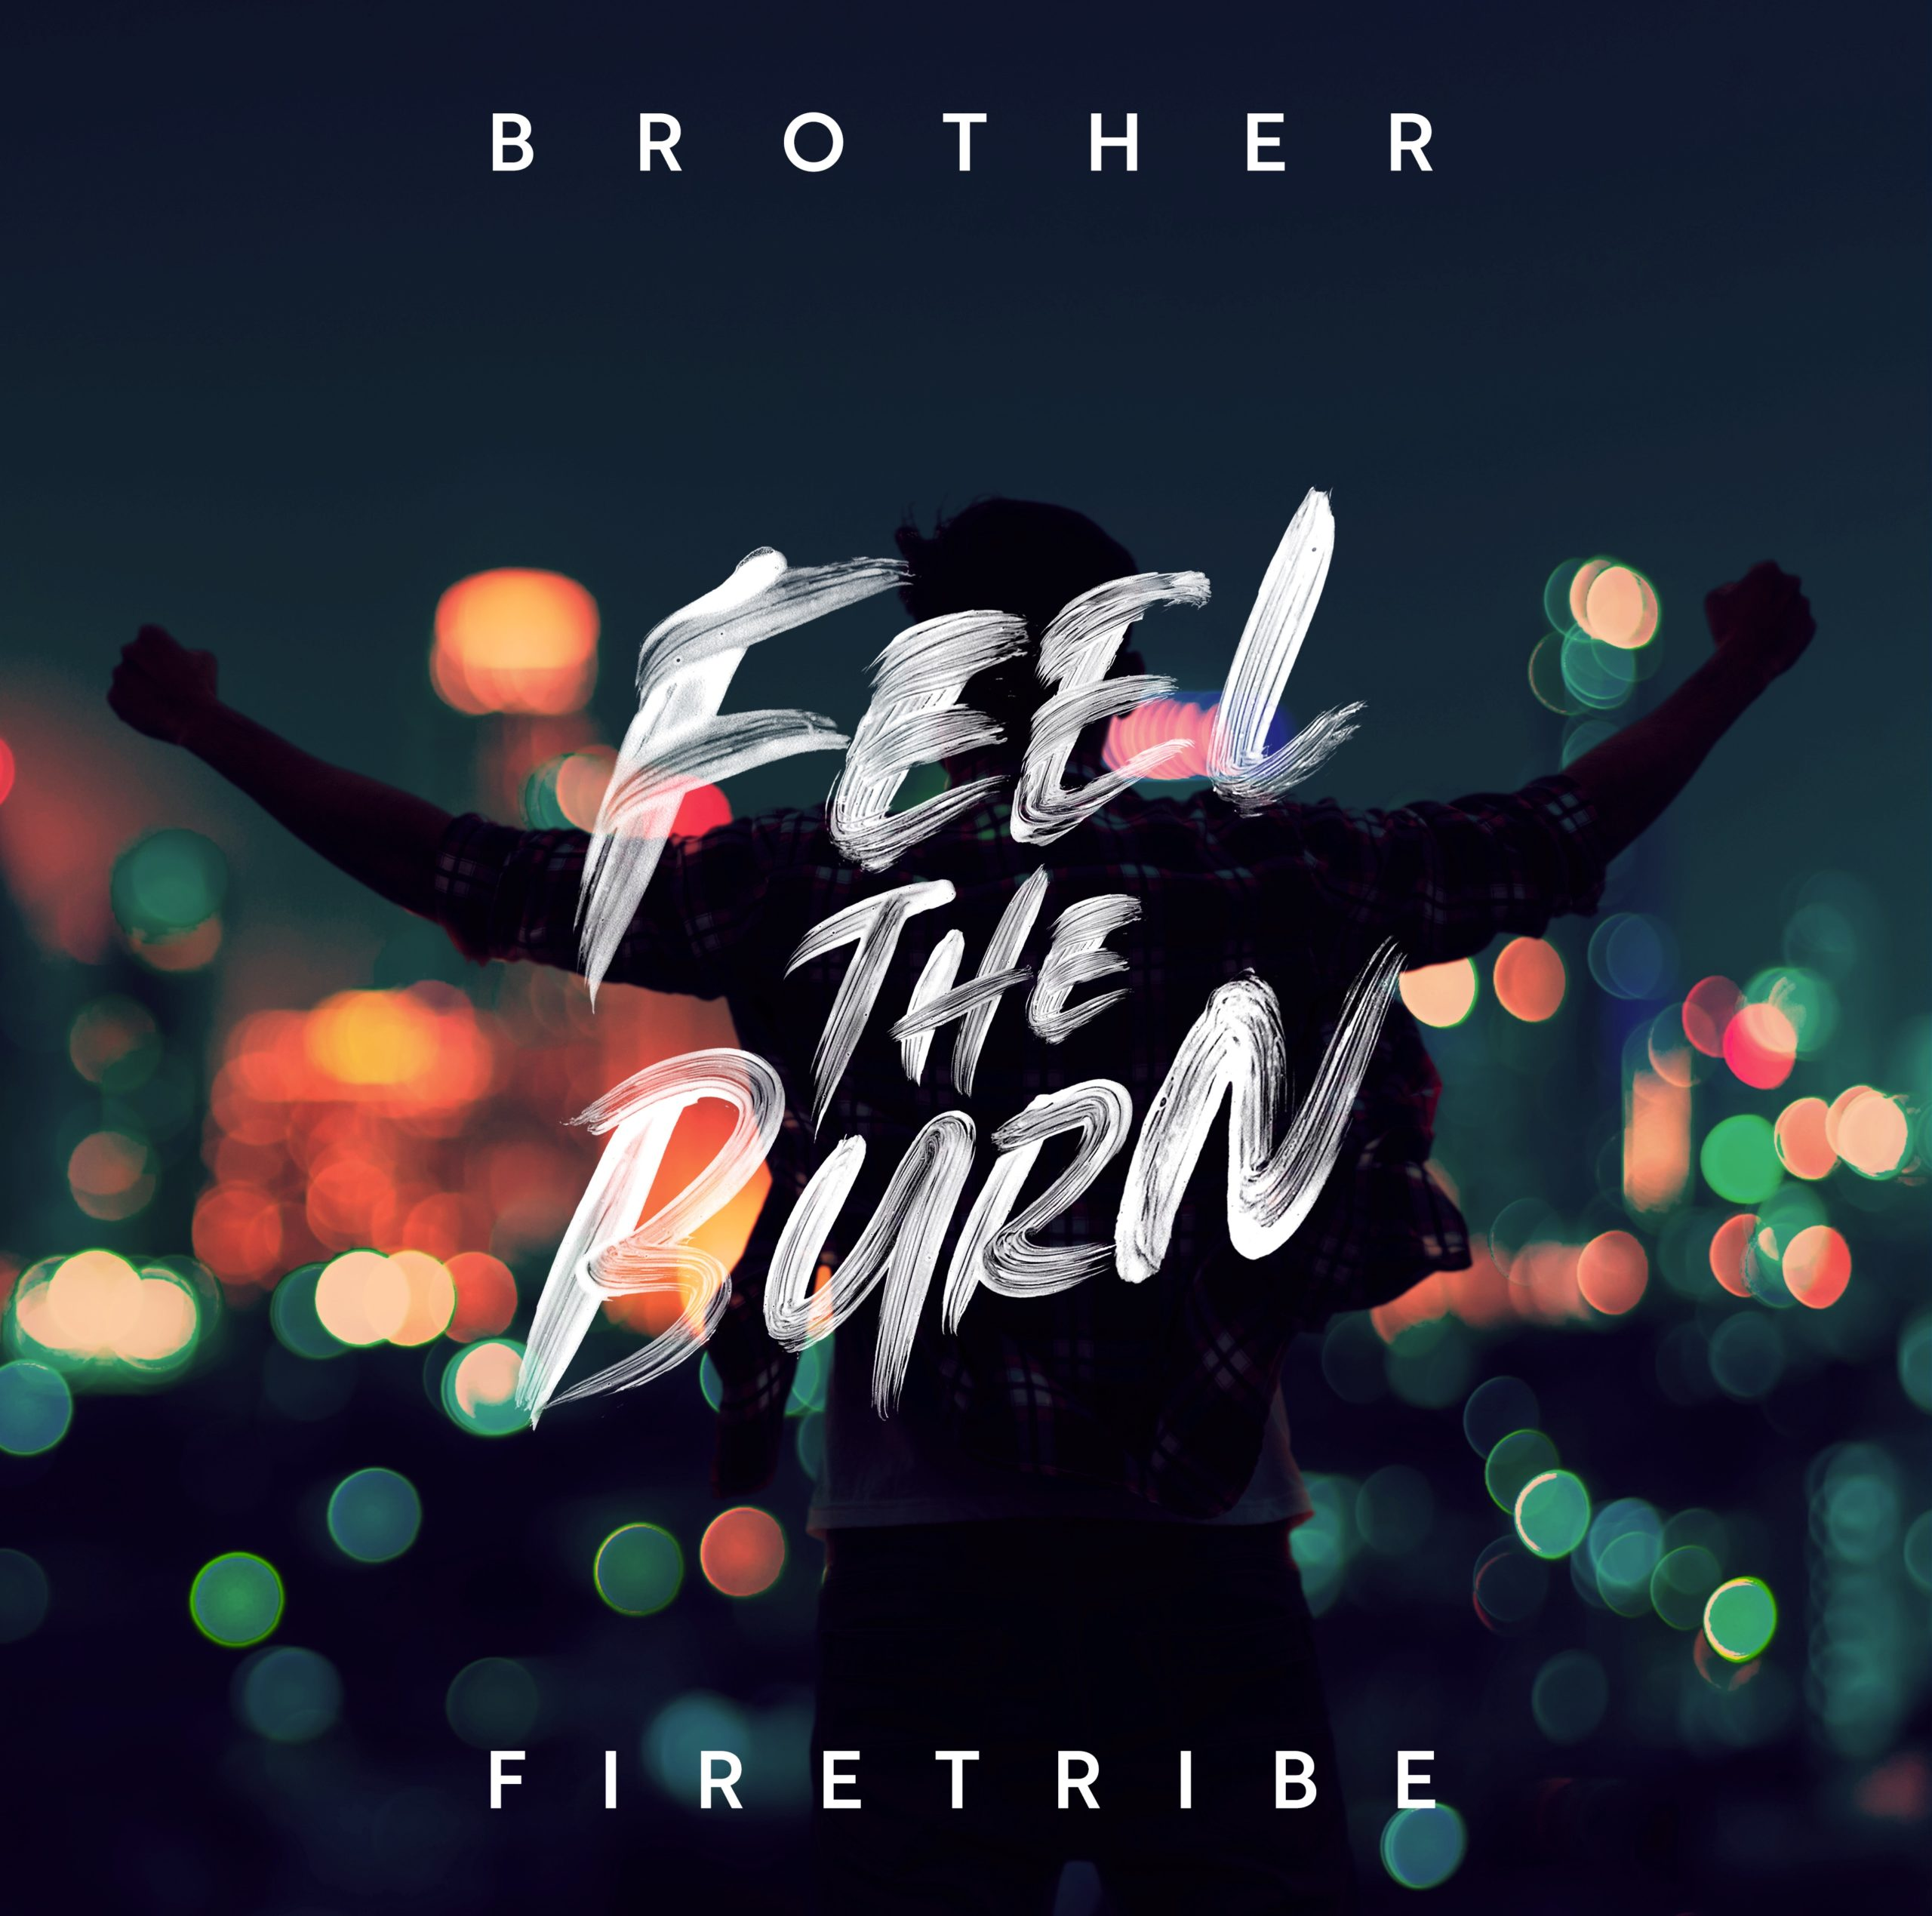 """Many people out there have a need for uplifting music right now"" – Interview with Pekka Ansio Heino of Brother Firetribe"